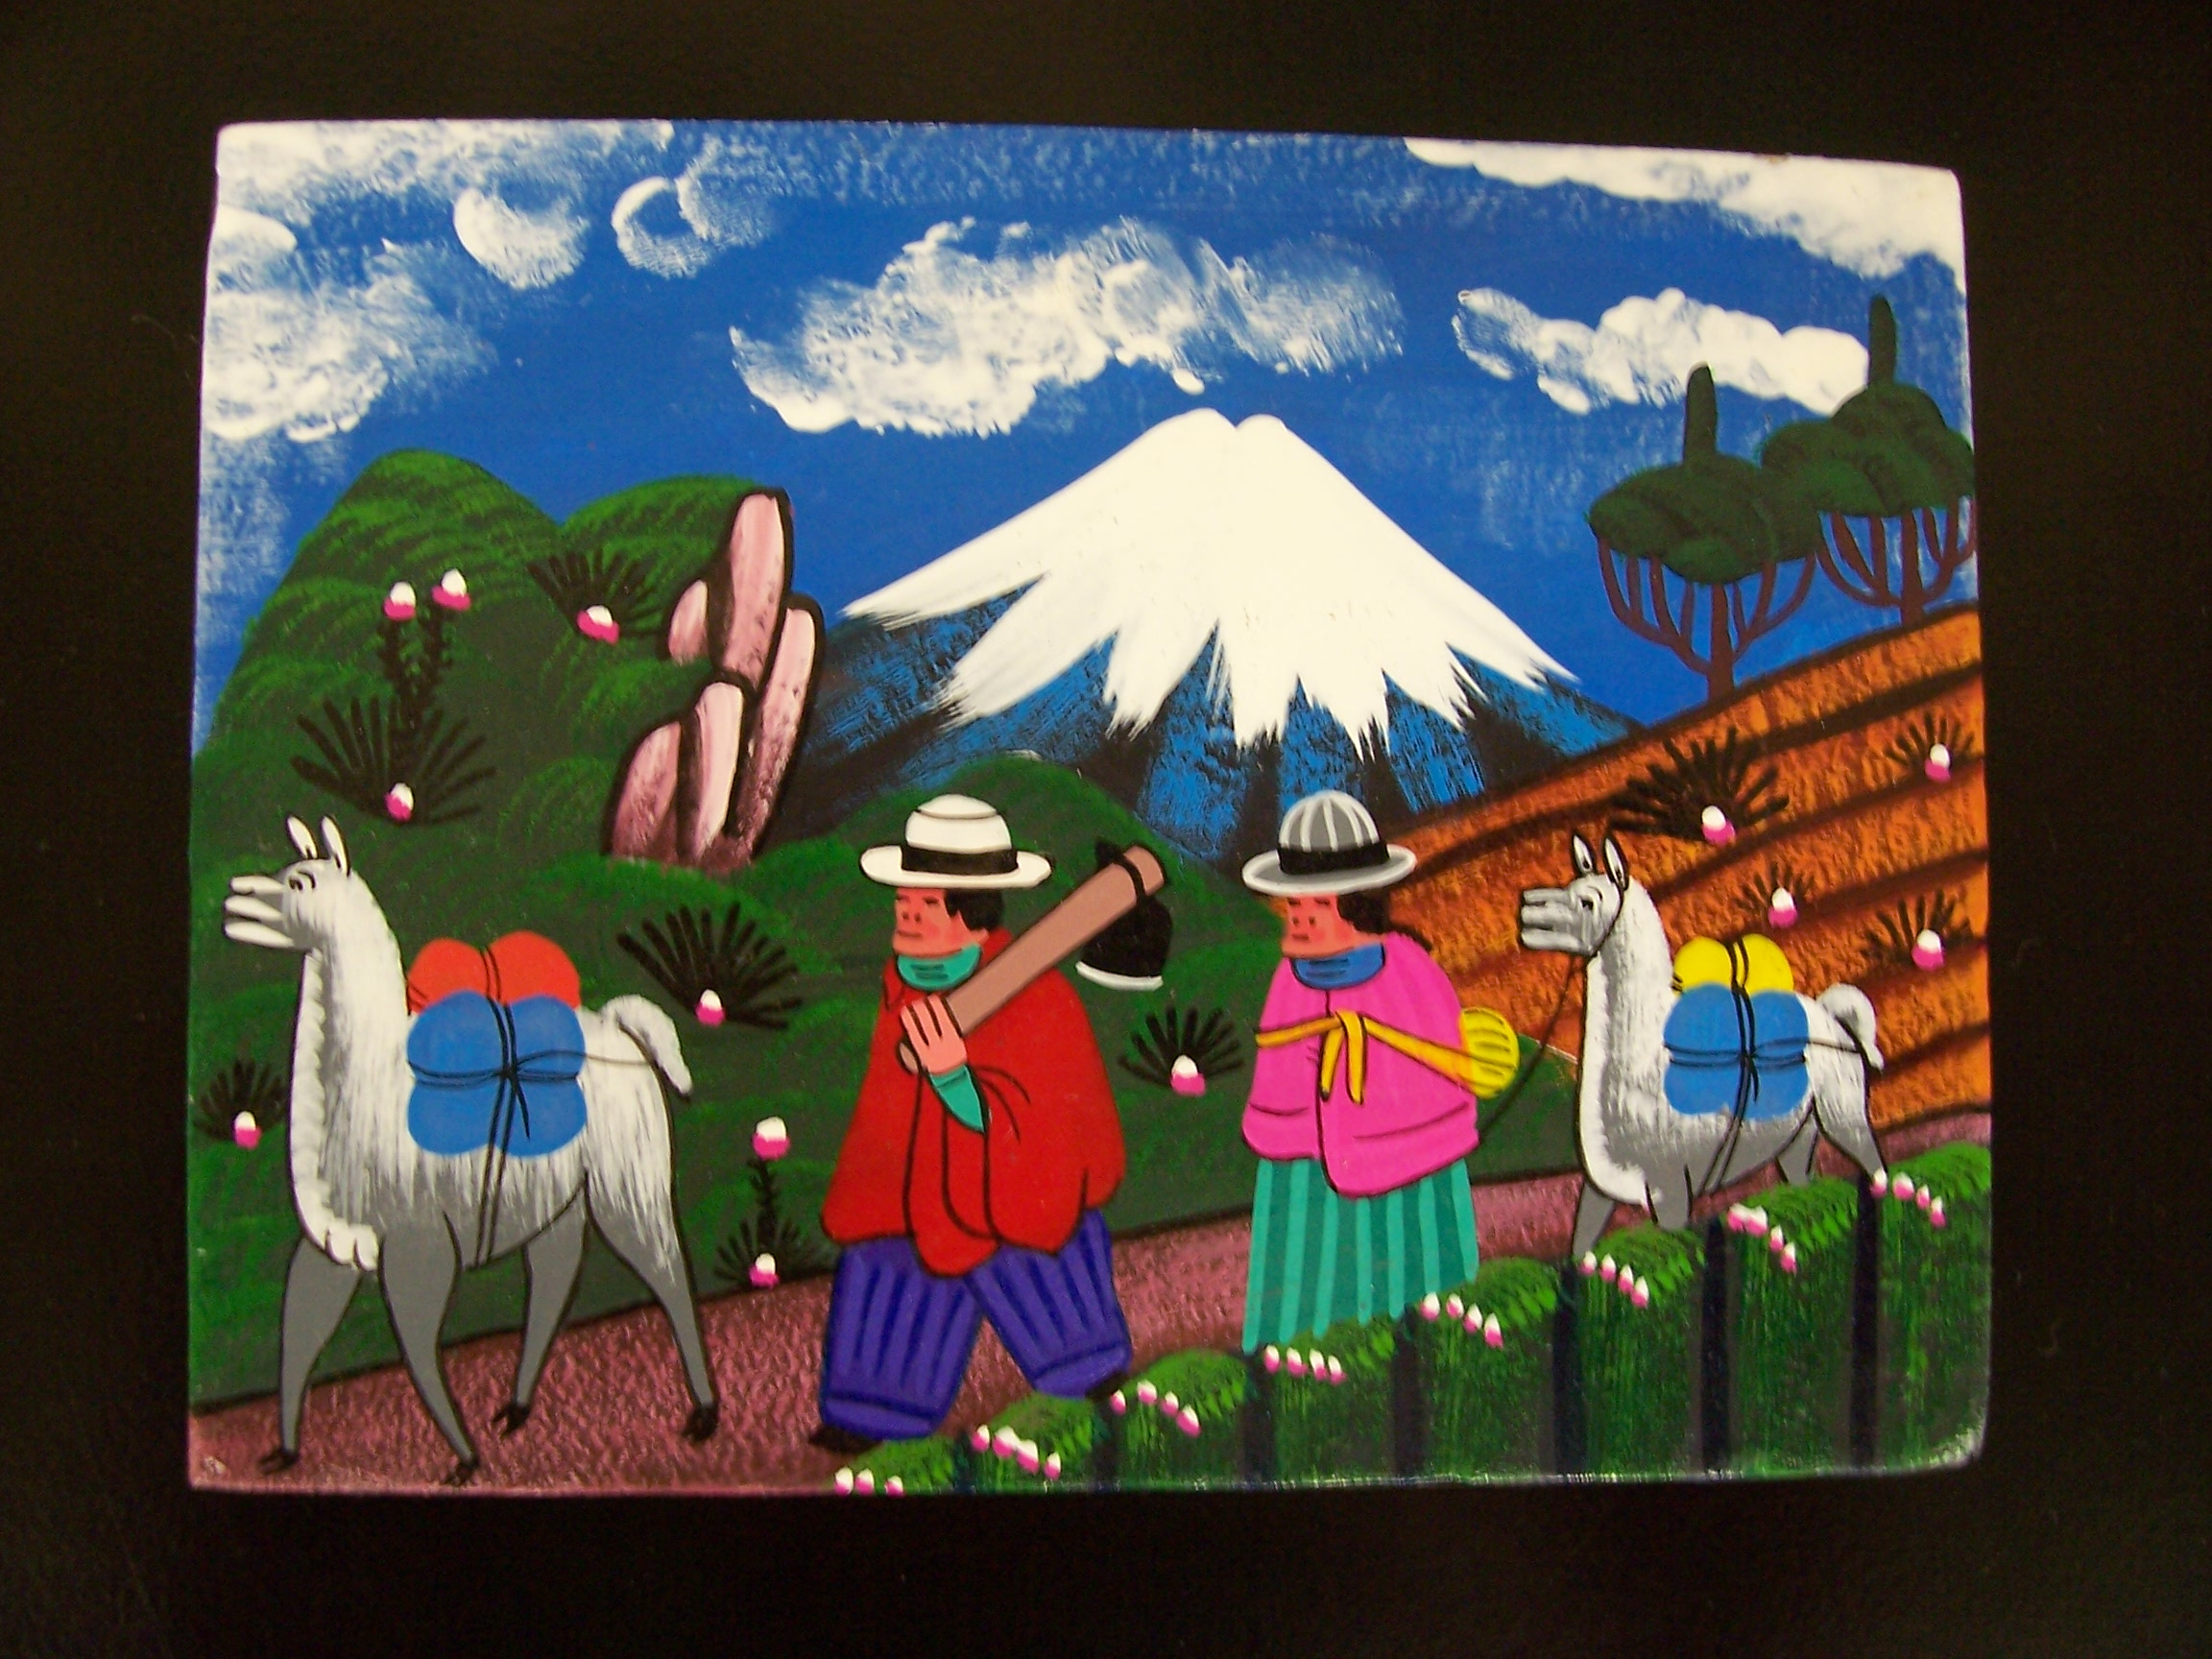 Tigua paintings from Ecuador